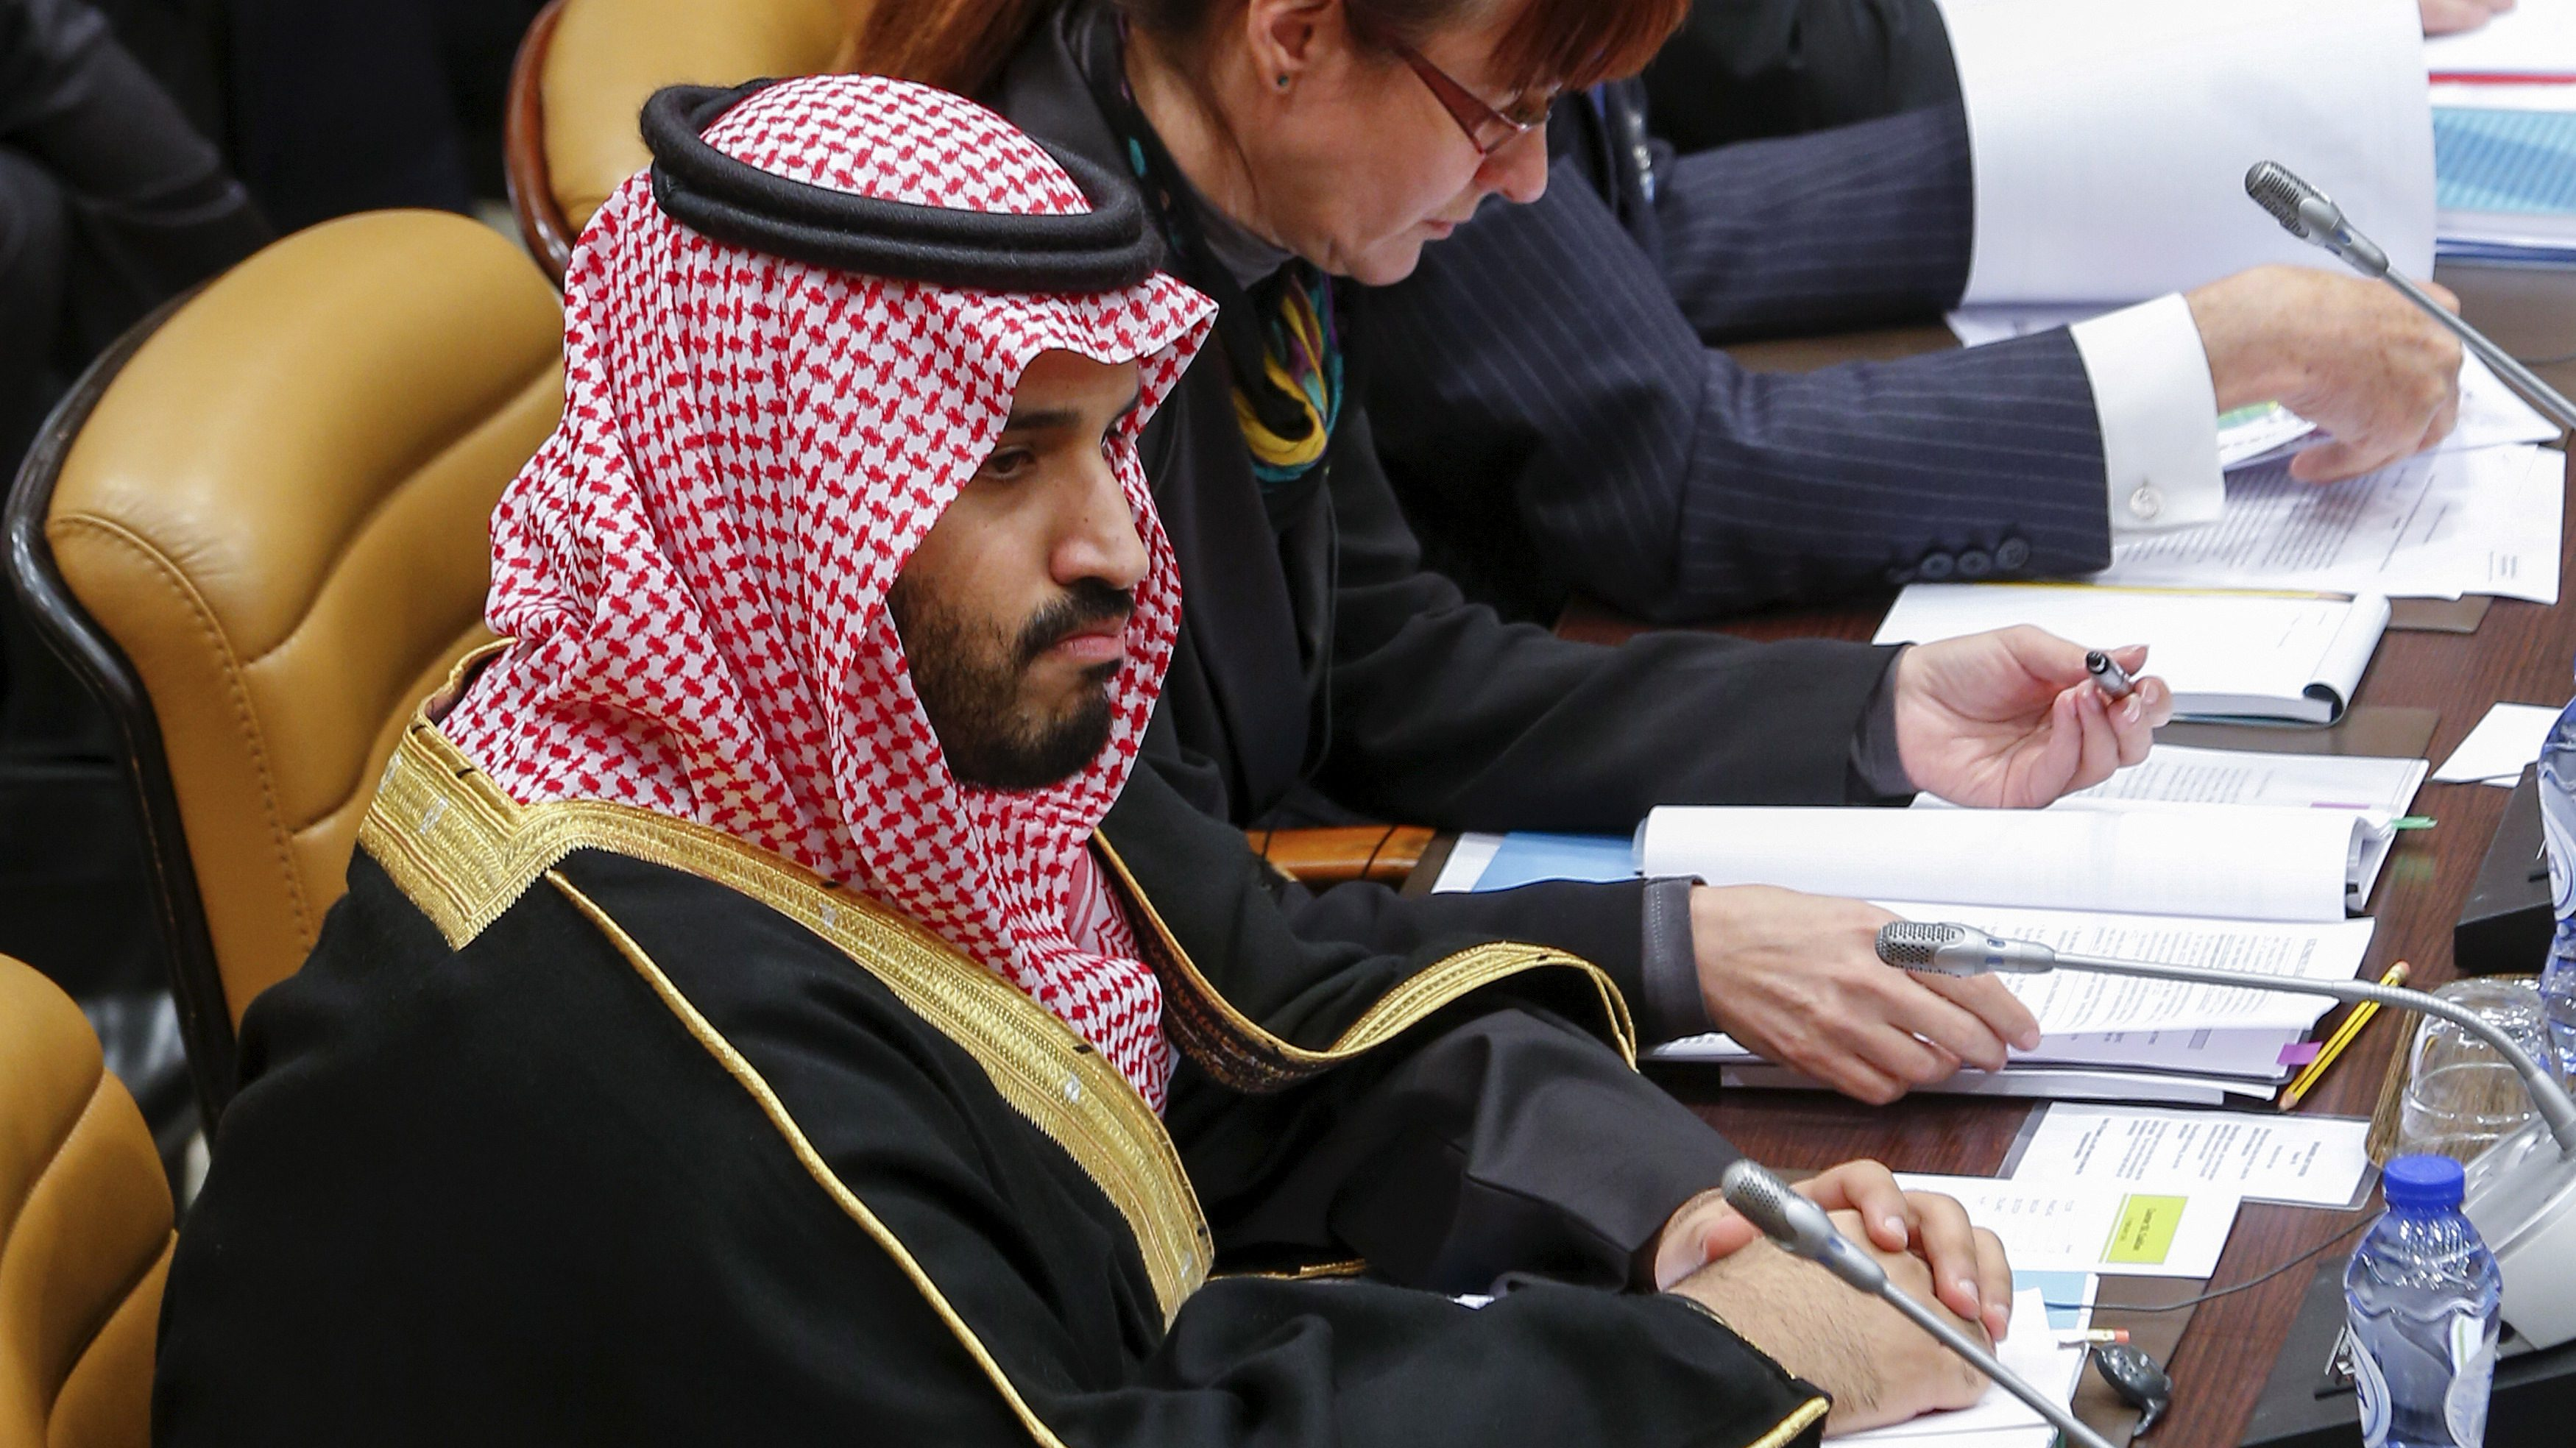 Saudi Defence Minister Prince Mohammed Bin Salman attends the first ever gathering of the Defense Ministers of the Global Coalition Against ISIL/Daesh at NATO headquarters in Brussels, Belgium, February 11, 2016. REUTERS/Yves Herman - RTX26HUO